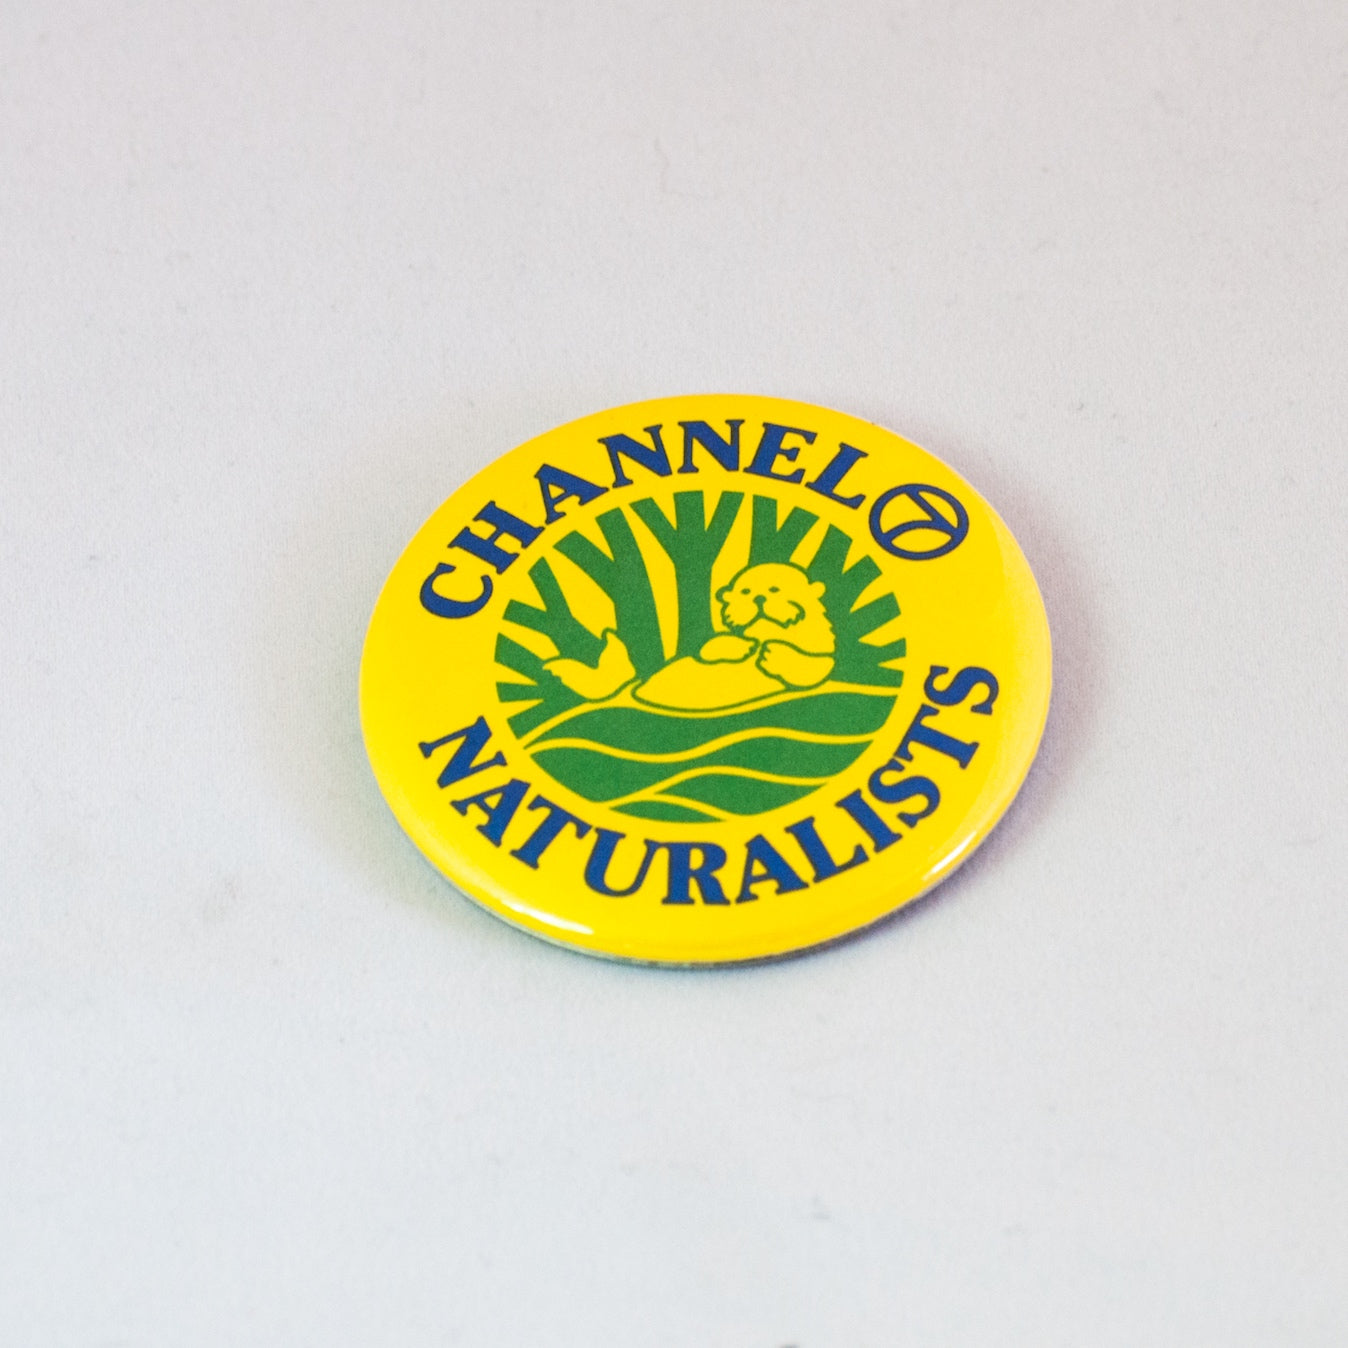 channel 7 naturalist otter yellow vintage button pinback